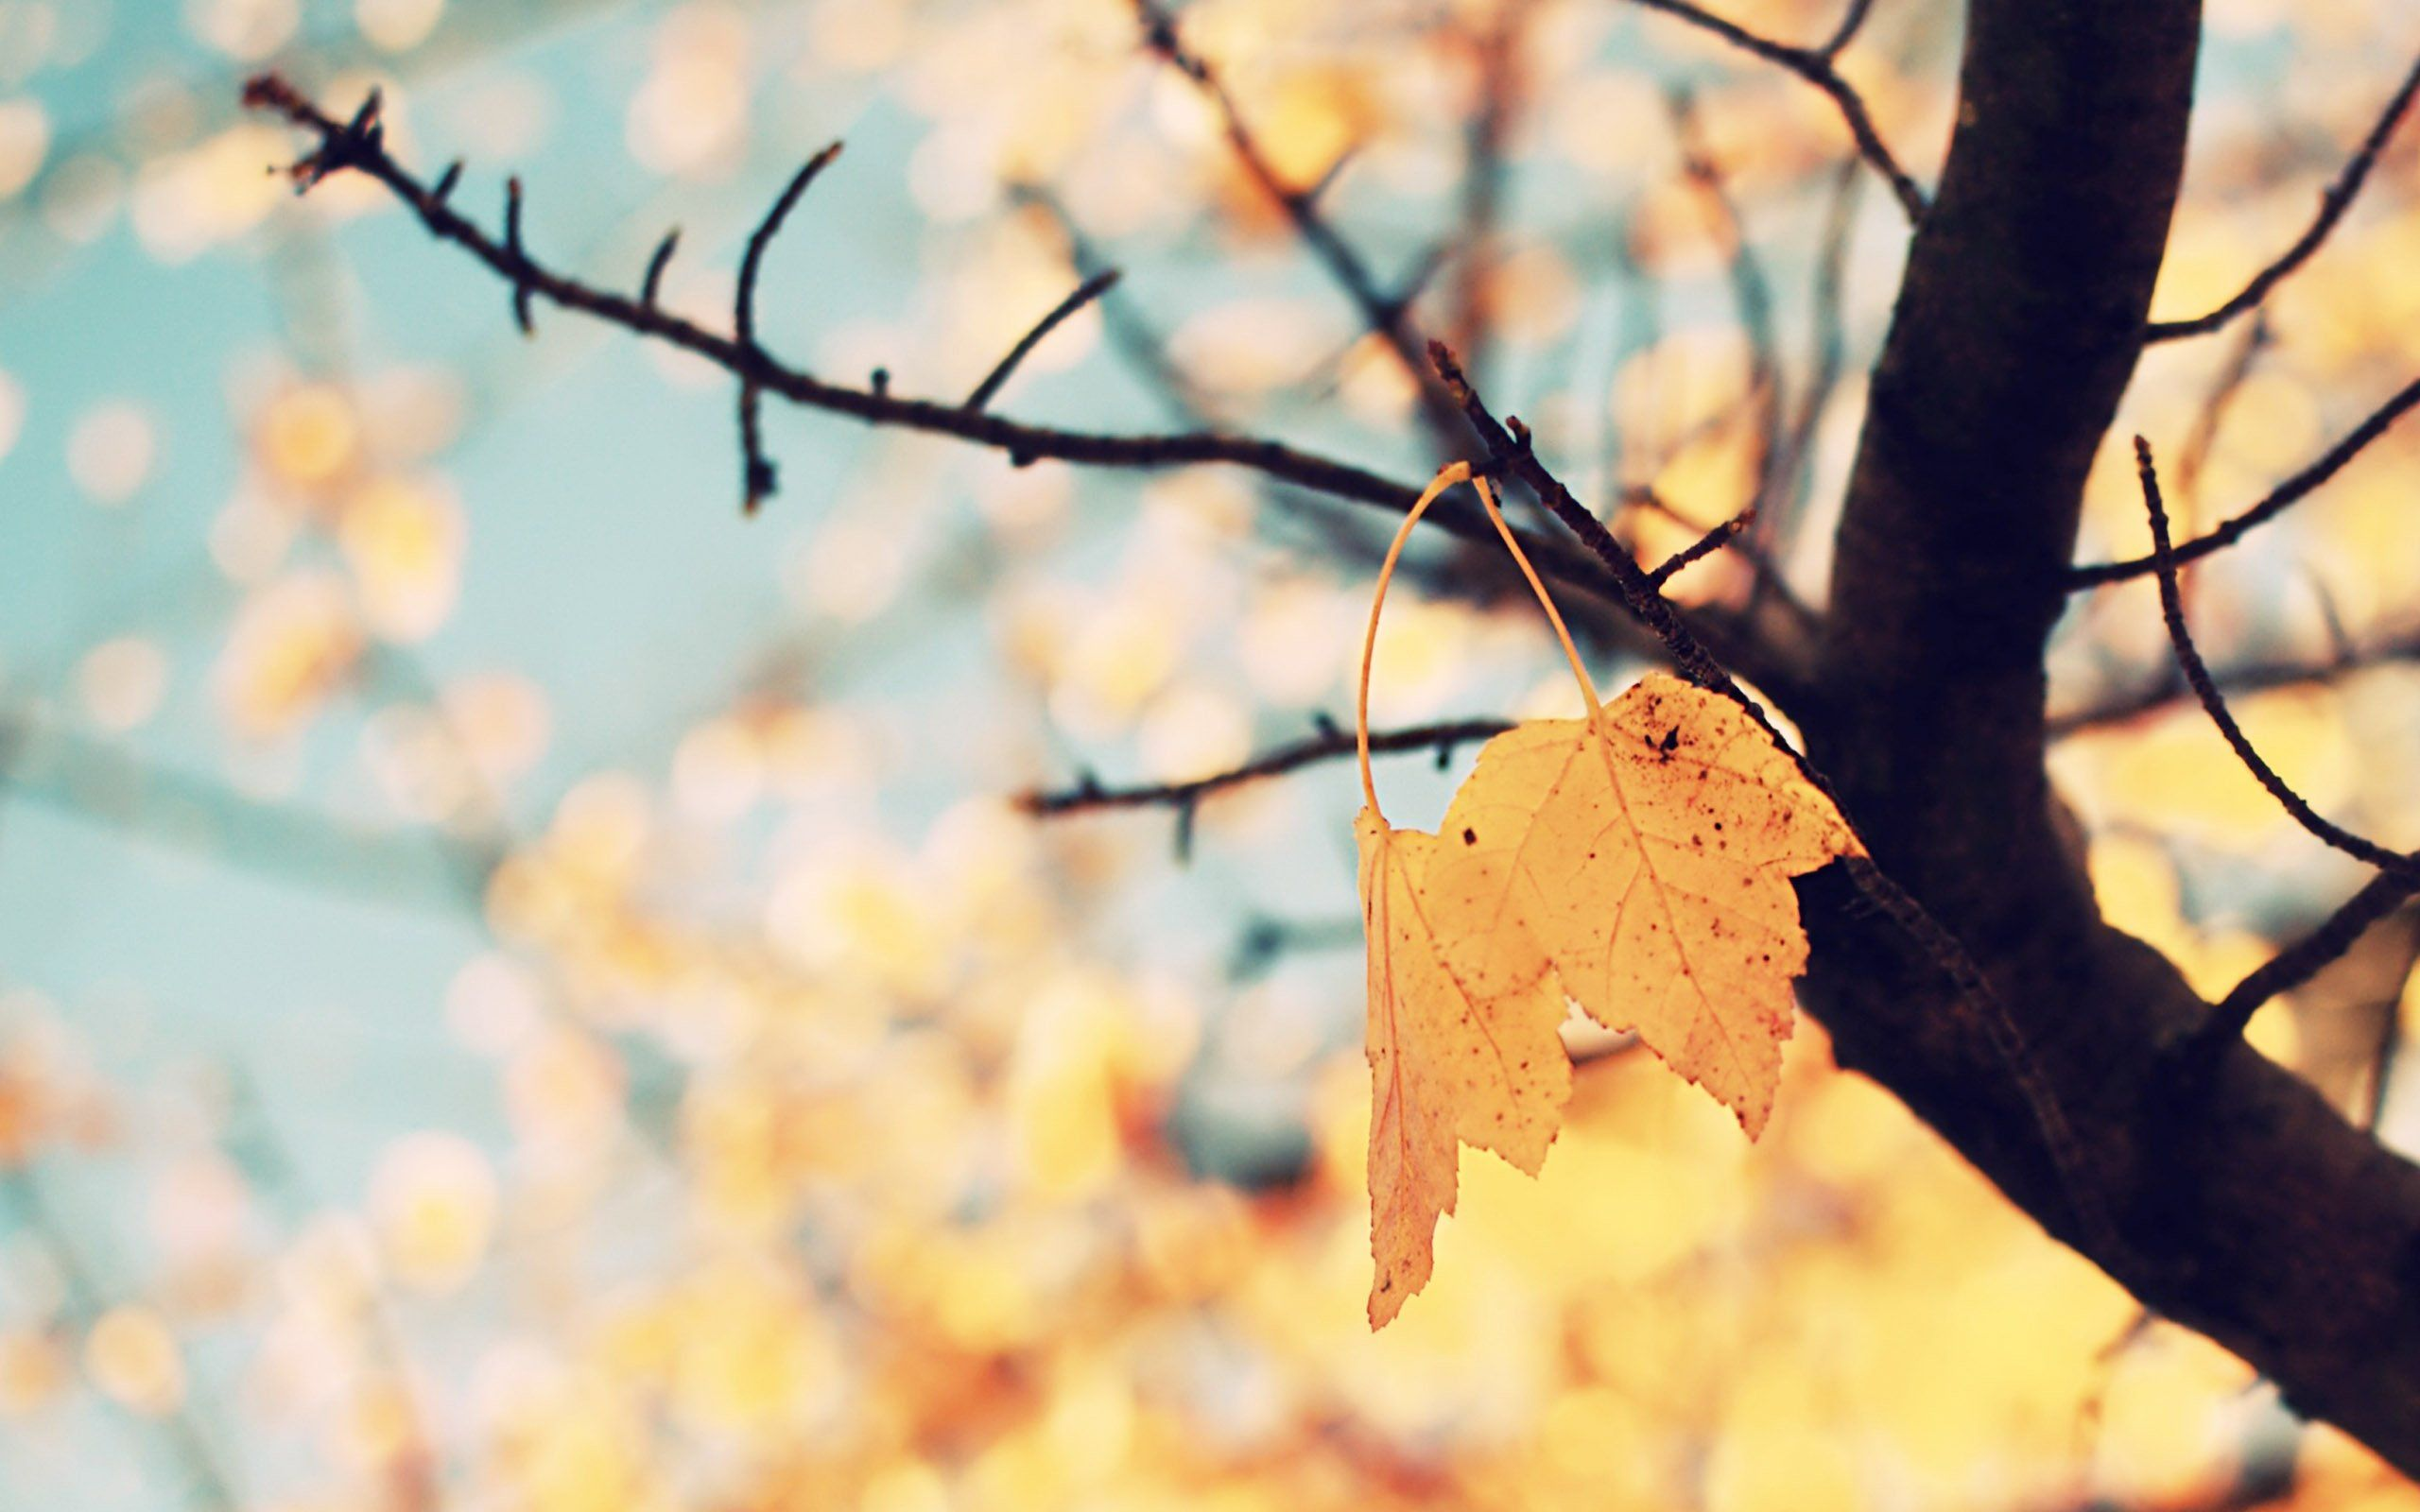 Iphone wallpaper tumblr fall - Backgrounds Cool Tumblr Iphone Last Leaf Left